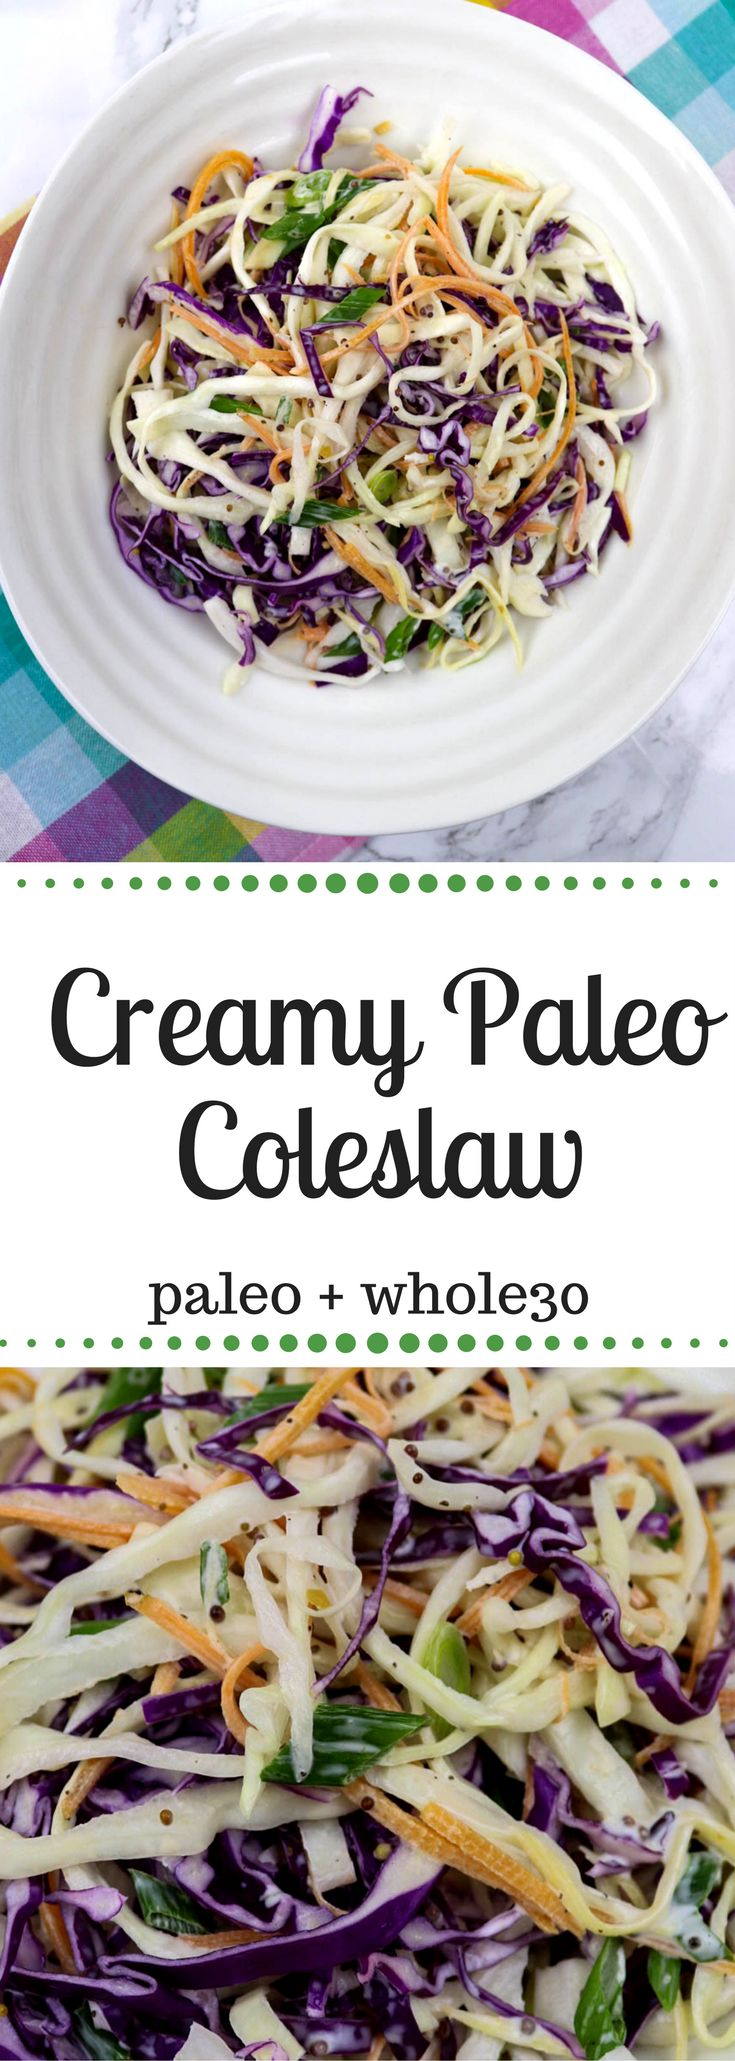 This Creamy Paleo Coleslaw uses Whole30 + Paleo compliant ingredients and is a great side-dish for BBQ!  Also - did you know you could Spiralize Cabbage!? Instructions included! #paleo #whole30